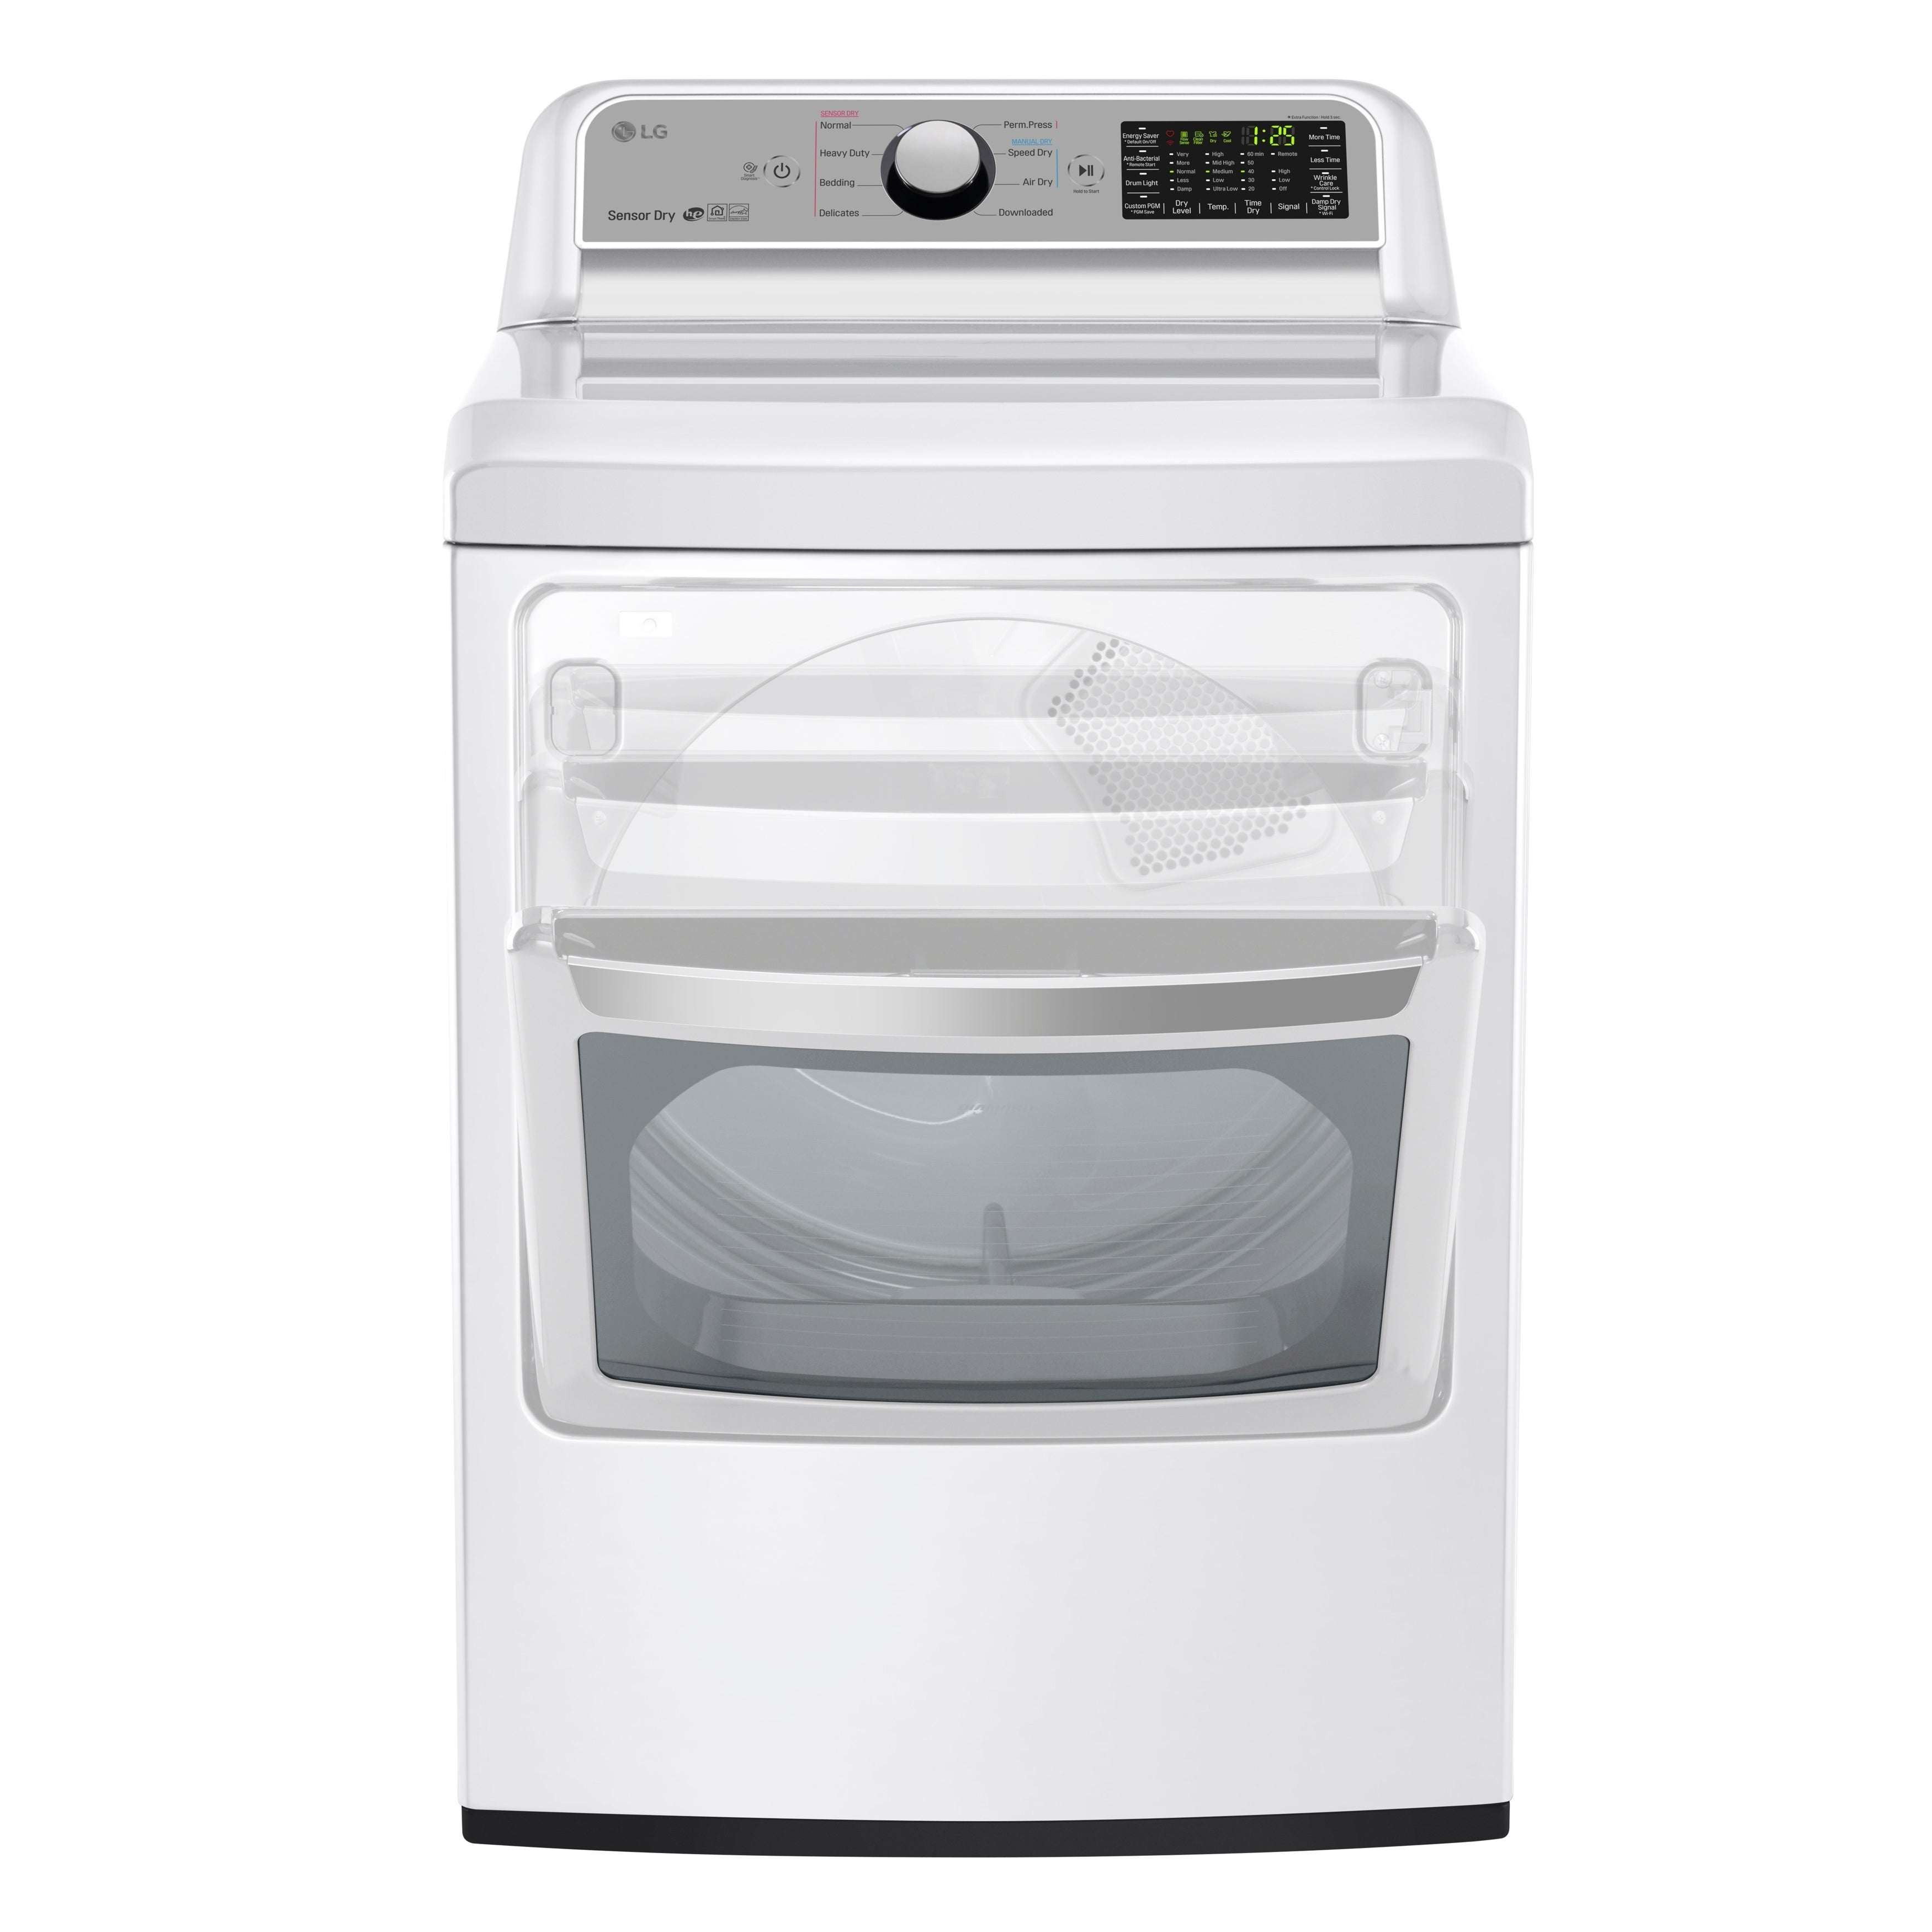 LG DLG7201WE 7.3 cu. ft. Super Capacity Gas Dryer with Se...